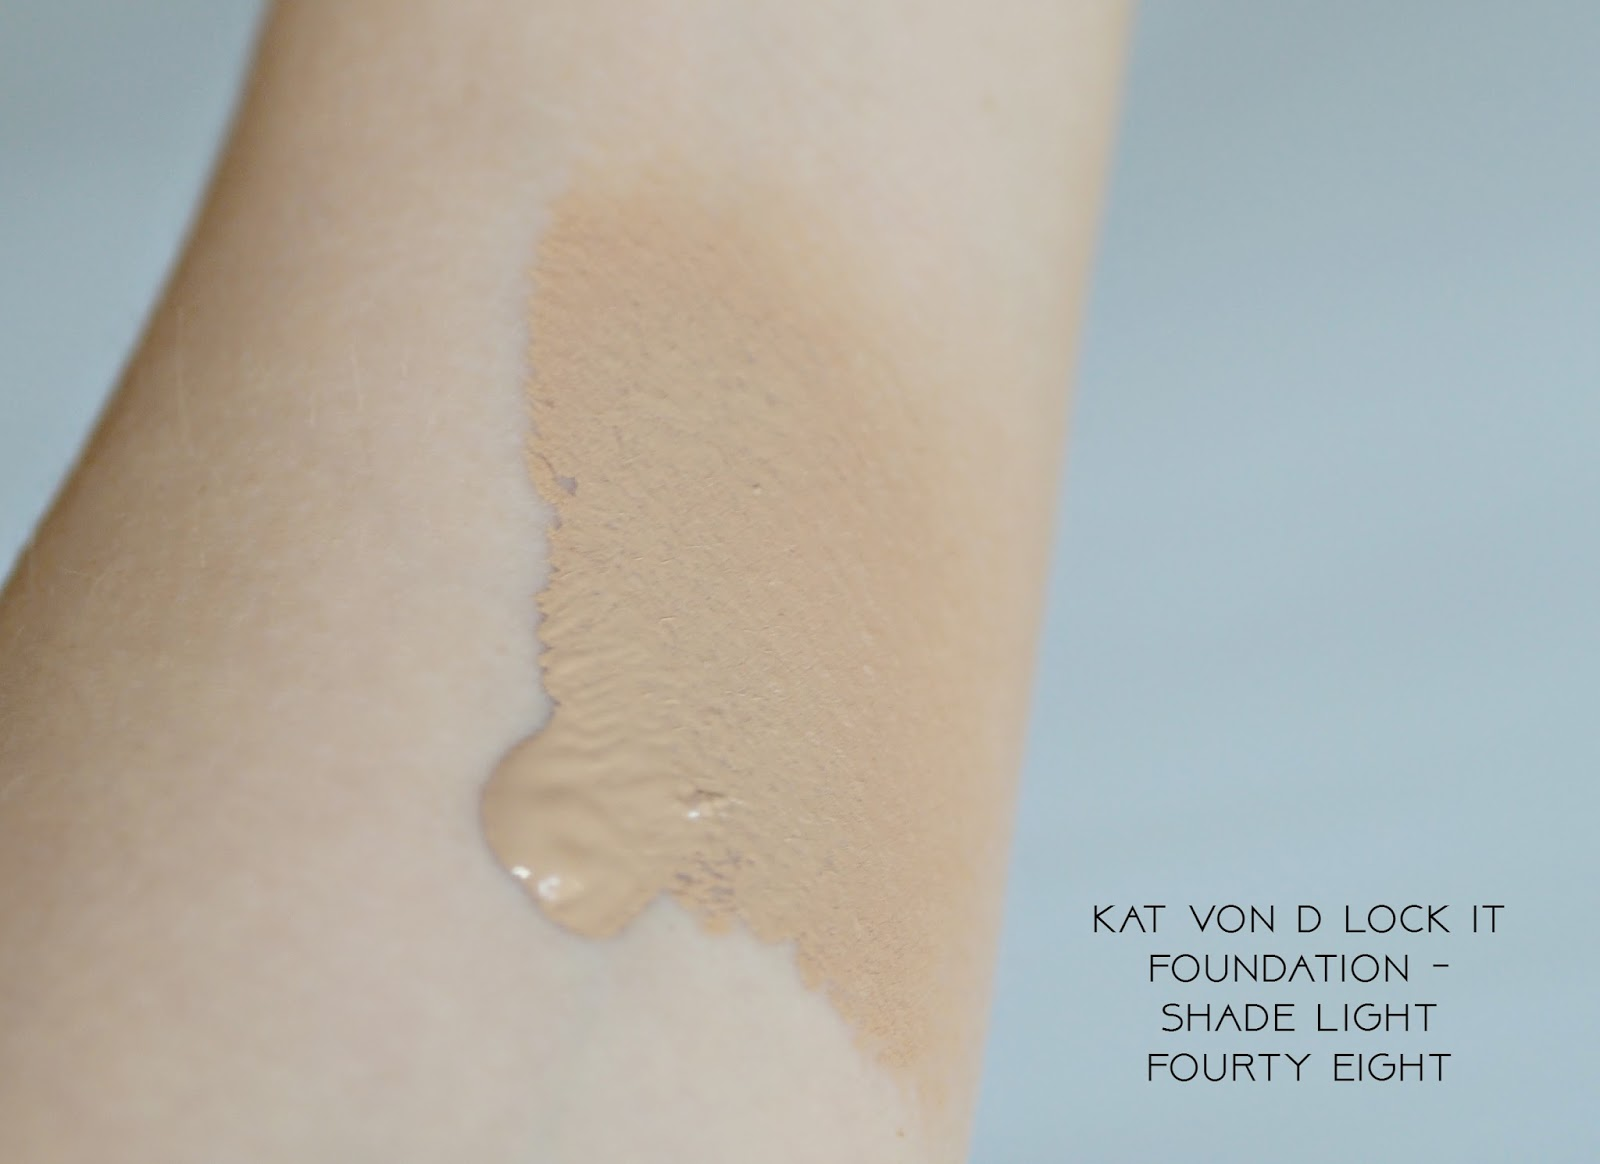 Kat Von D Lock it foundation - shade light 48, swatch